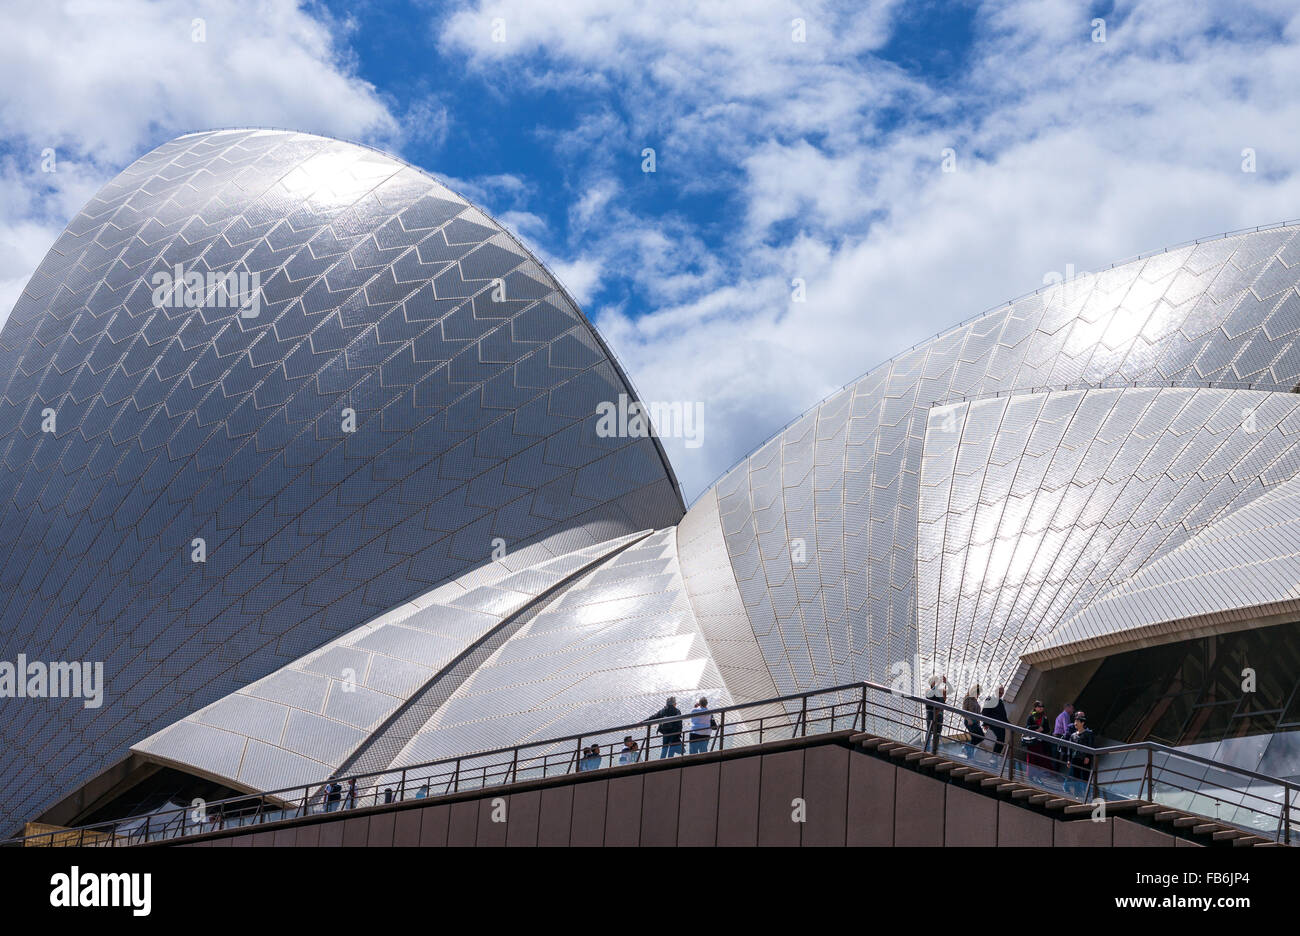 Australia, Sydney, architectural detail of the Opera House - Stock Image